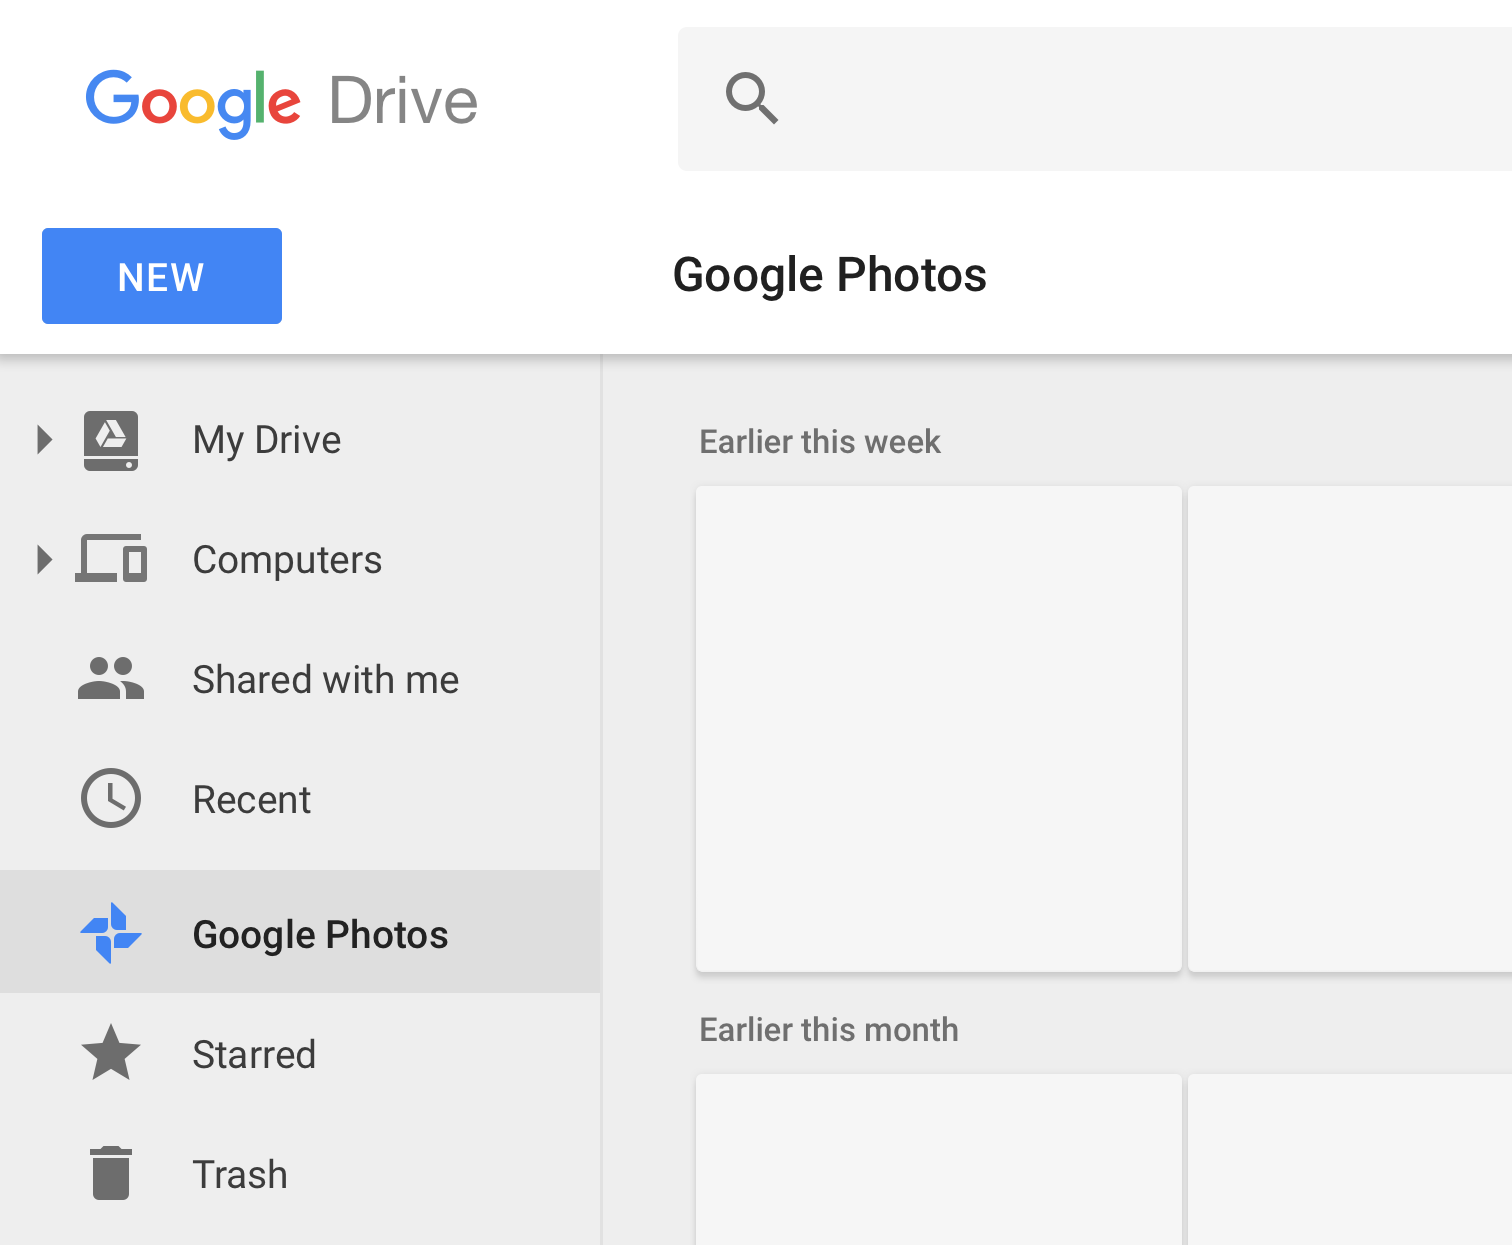 Google Drive removing 'Google Photos' tab from the nav